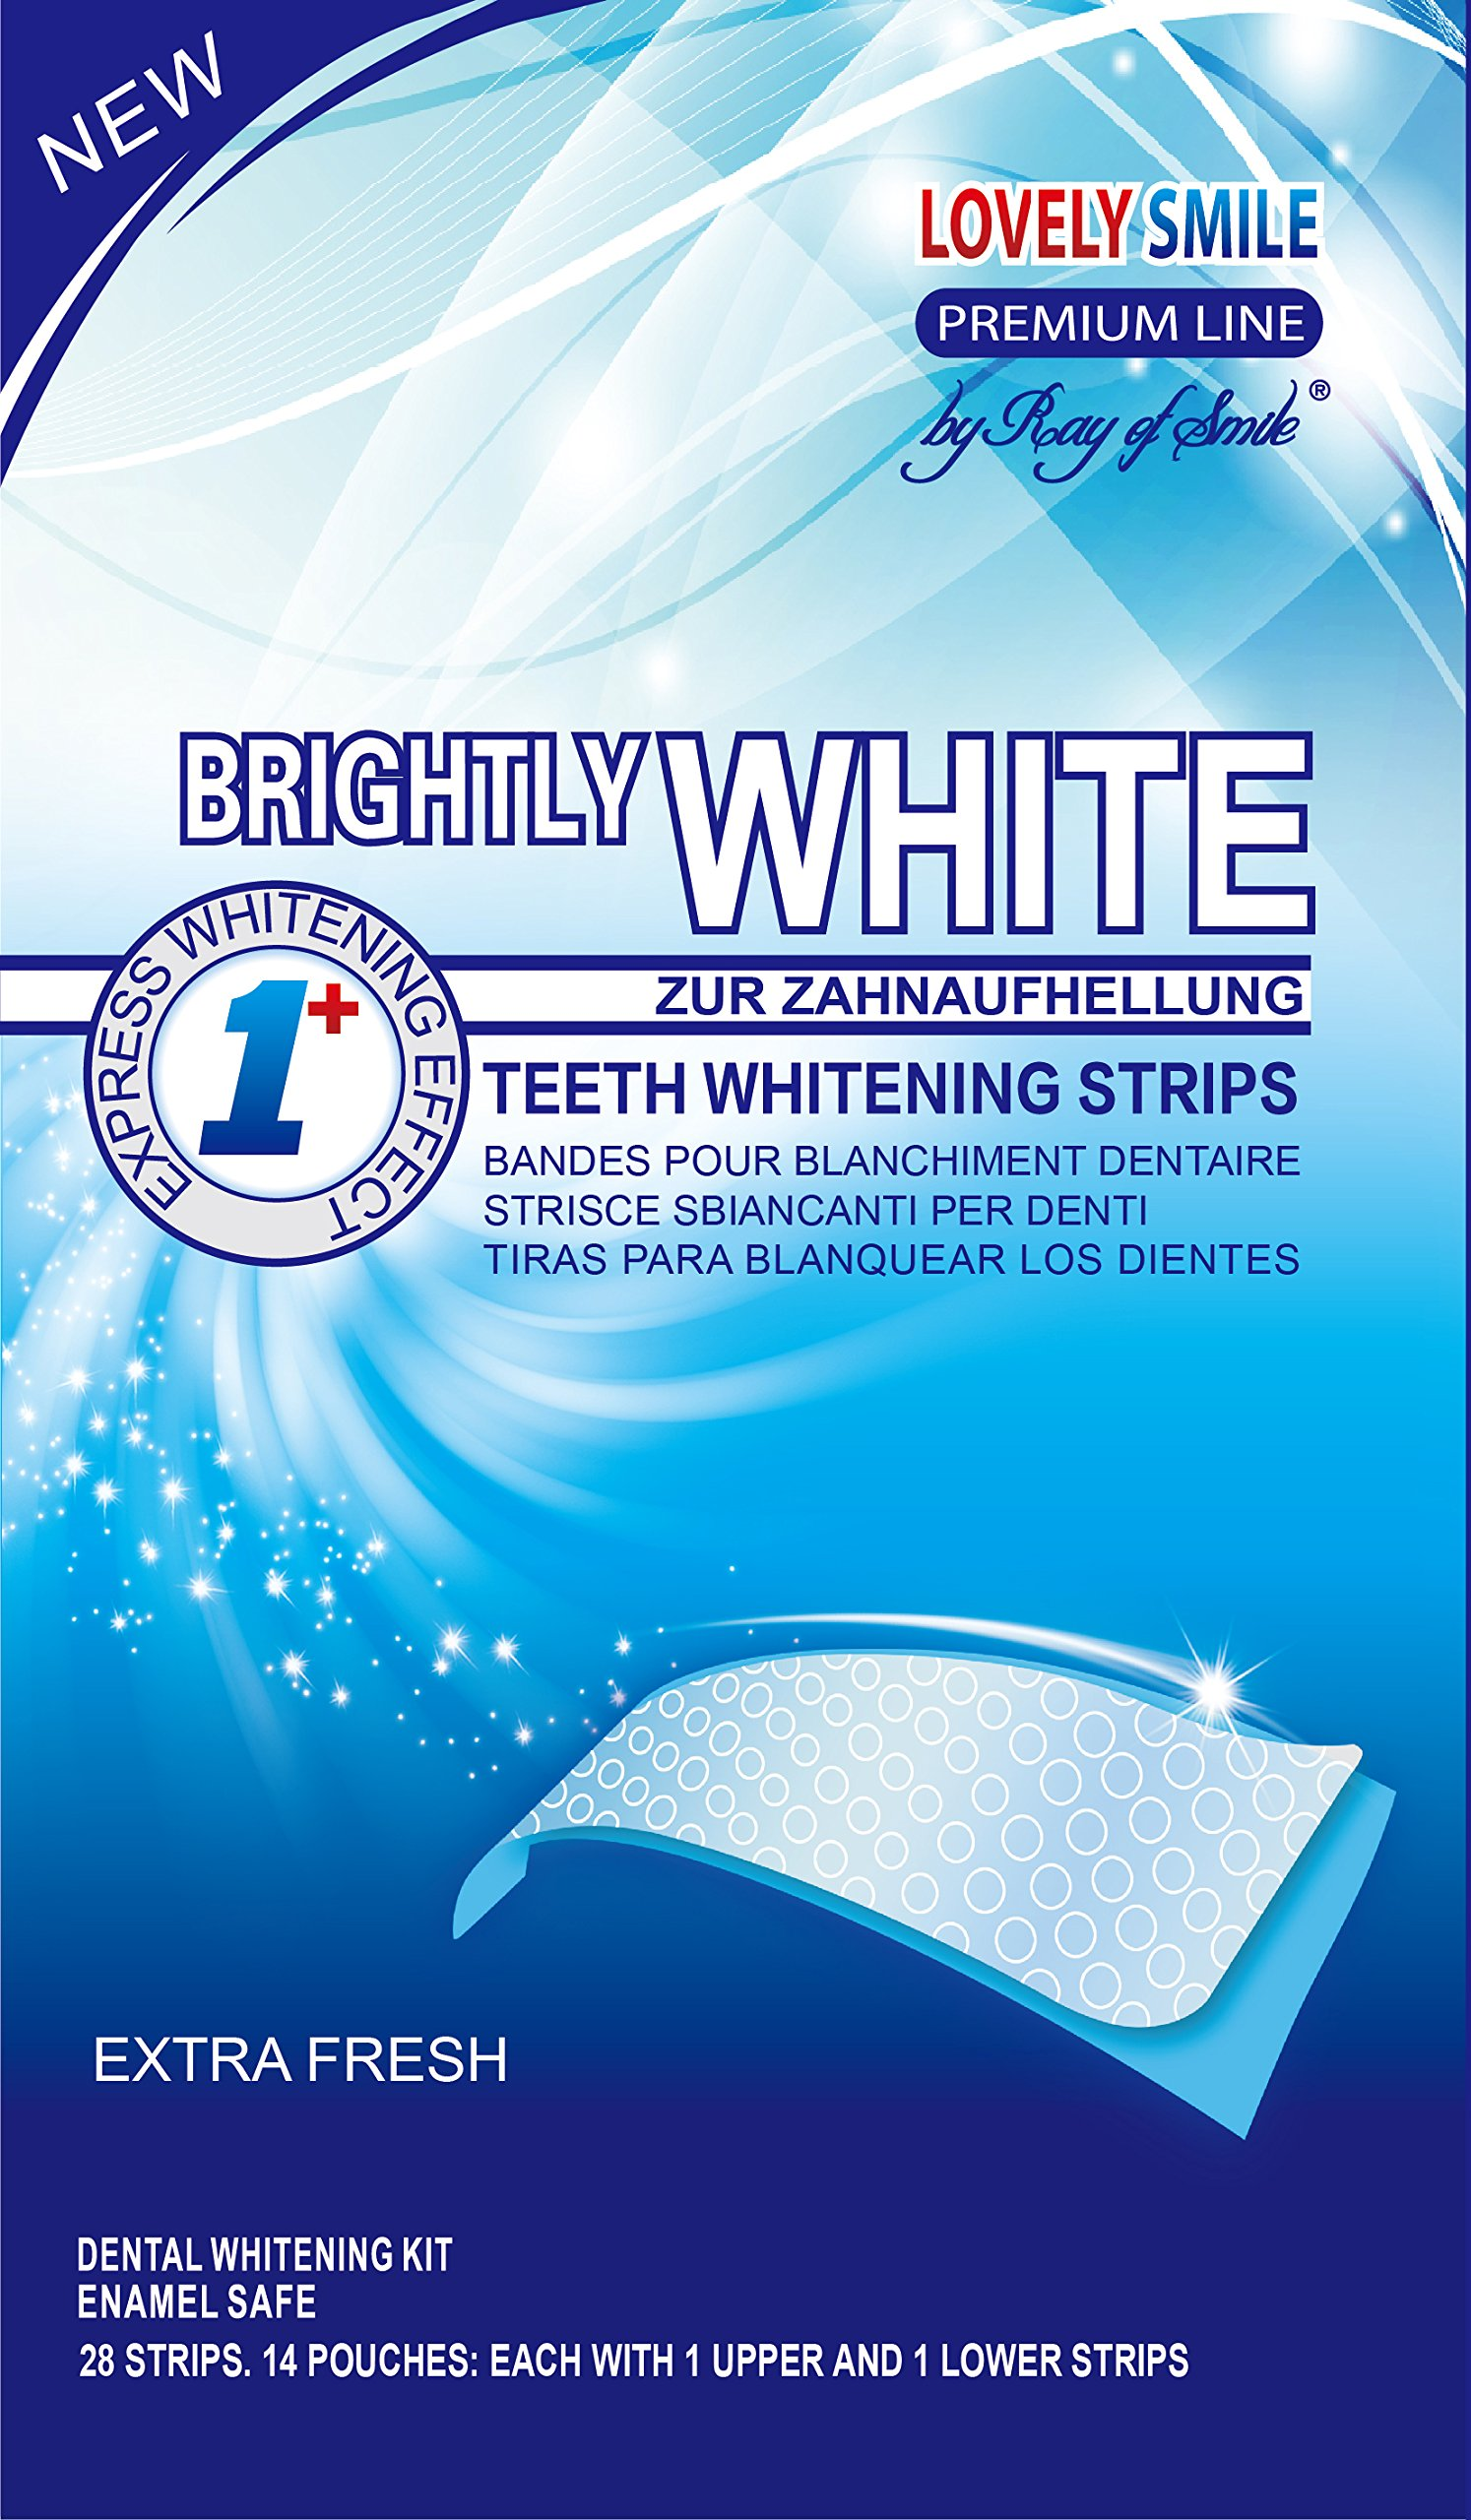 Lovely Smile | 28 WHITE-STRIPS Teeth whitening strips - Advanced NO-SLIP TECHNOLOGY - Professional Teeth Whitening Kit - Premium Line by Ray of Smile® product image